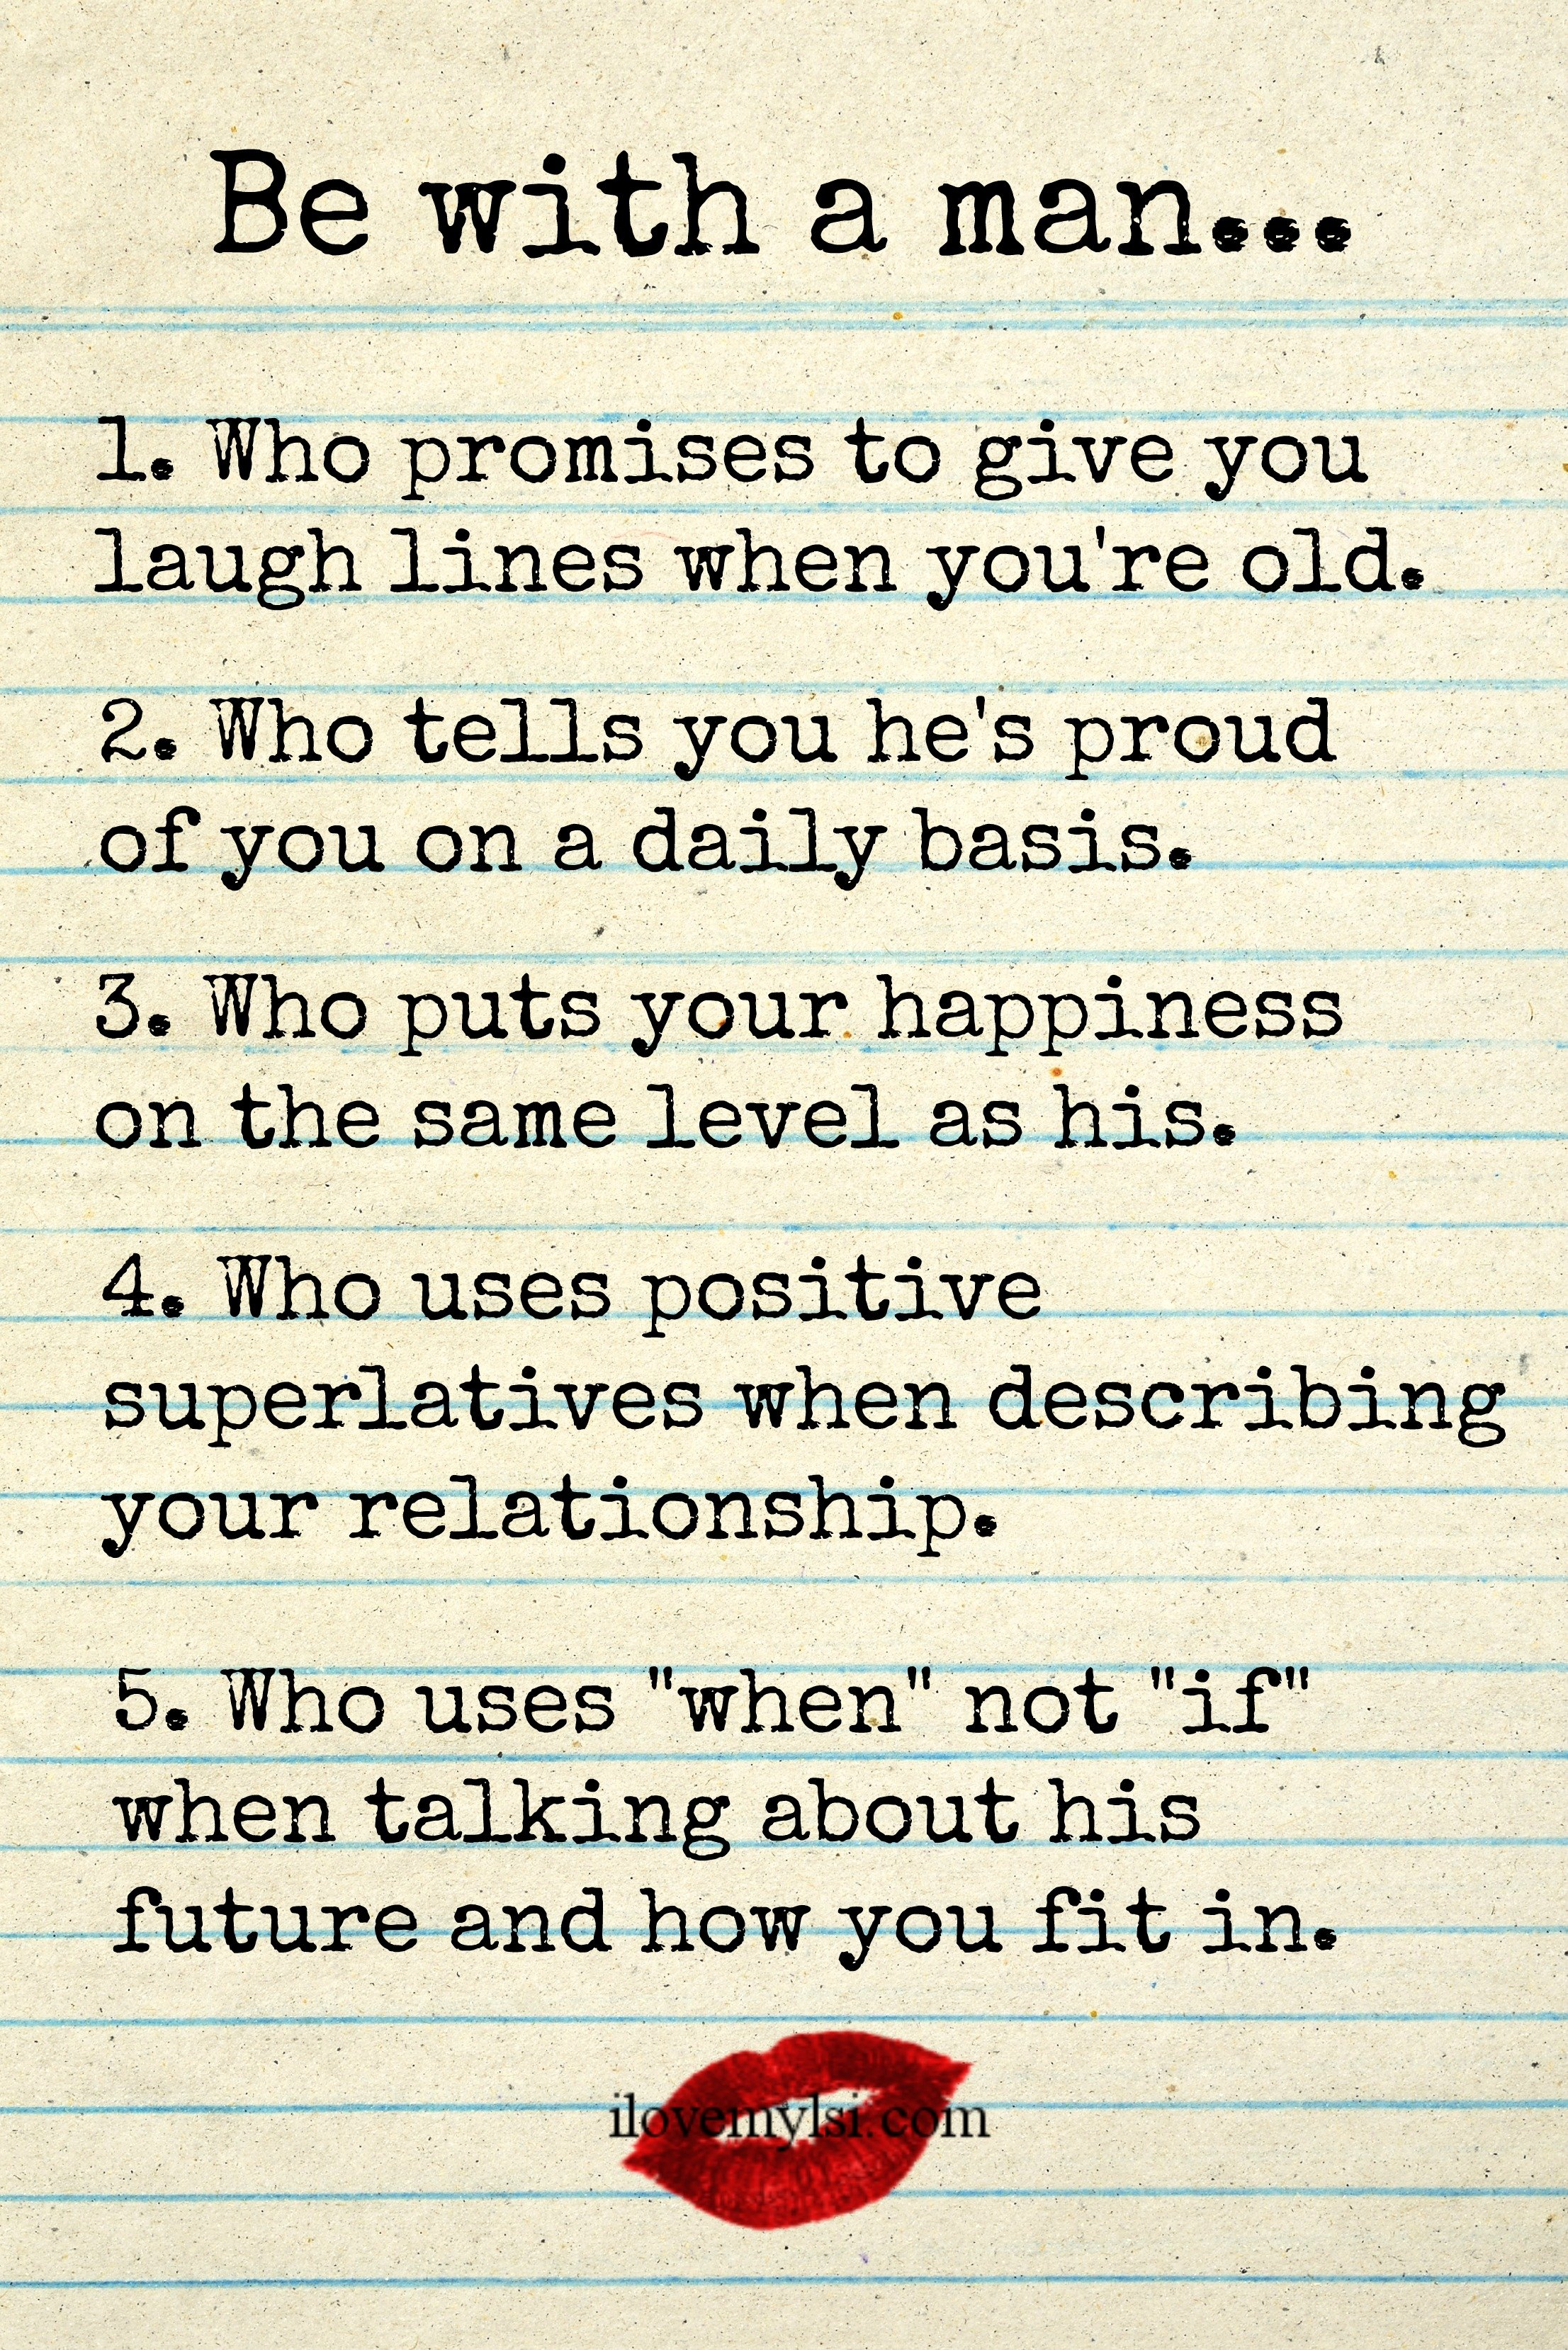 To Love About The Man Quotes Relationships: Relationship Quotes About Being Supportive. QuotesGram